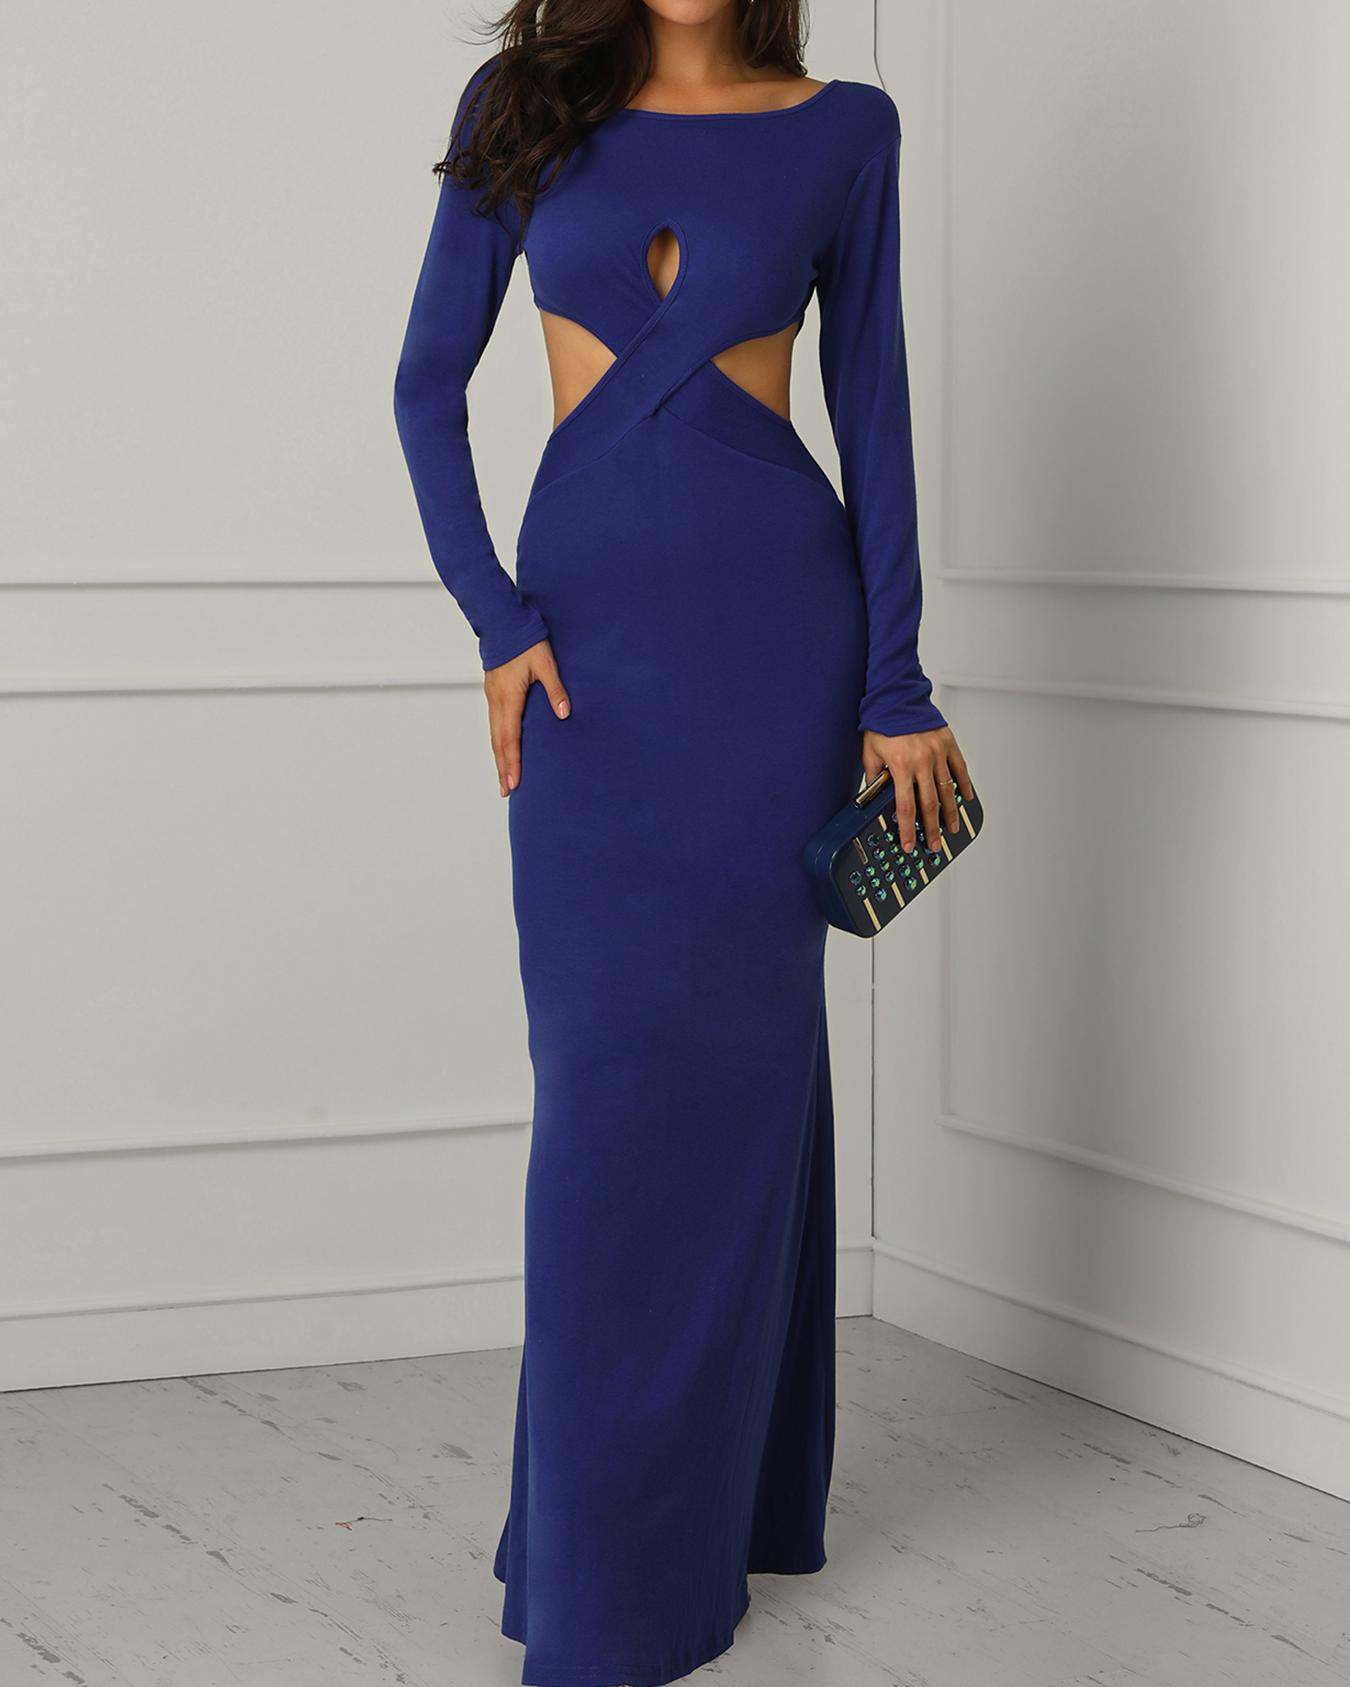 chicme / Solid Crisscross Cutout Backless Evening Dress